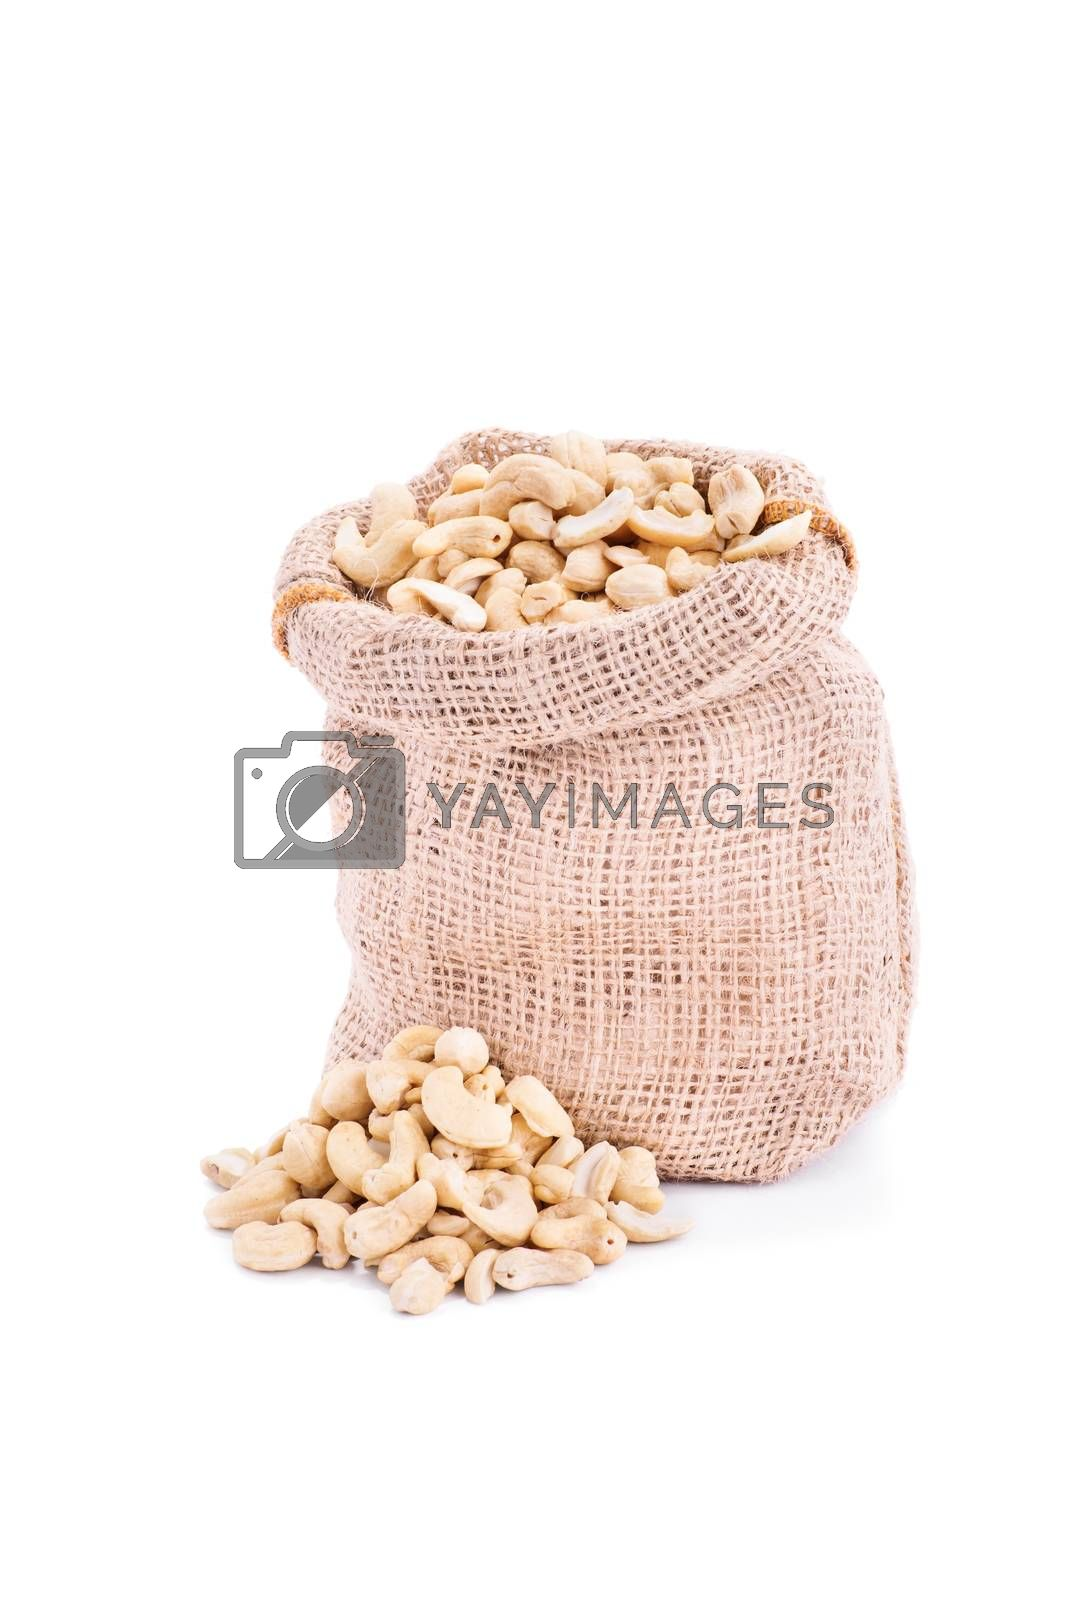 Small burlap sack of fresh cashews, isolated on white background.